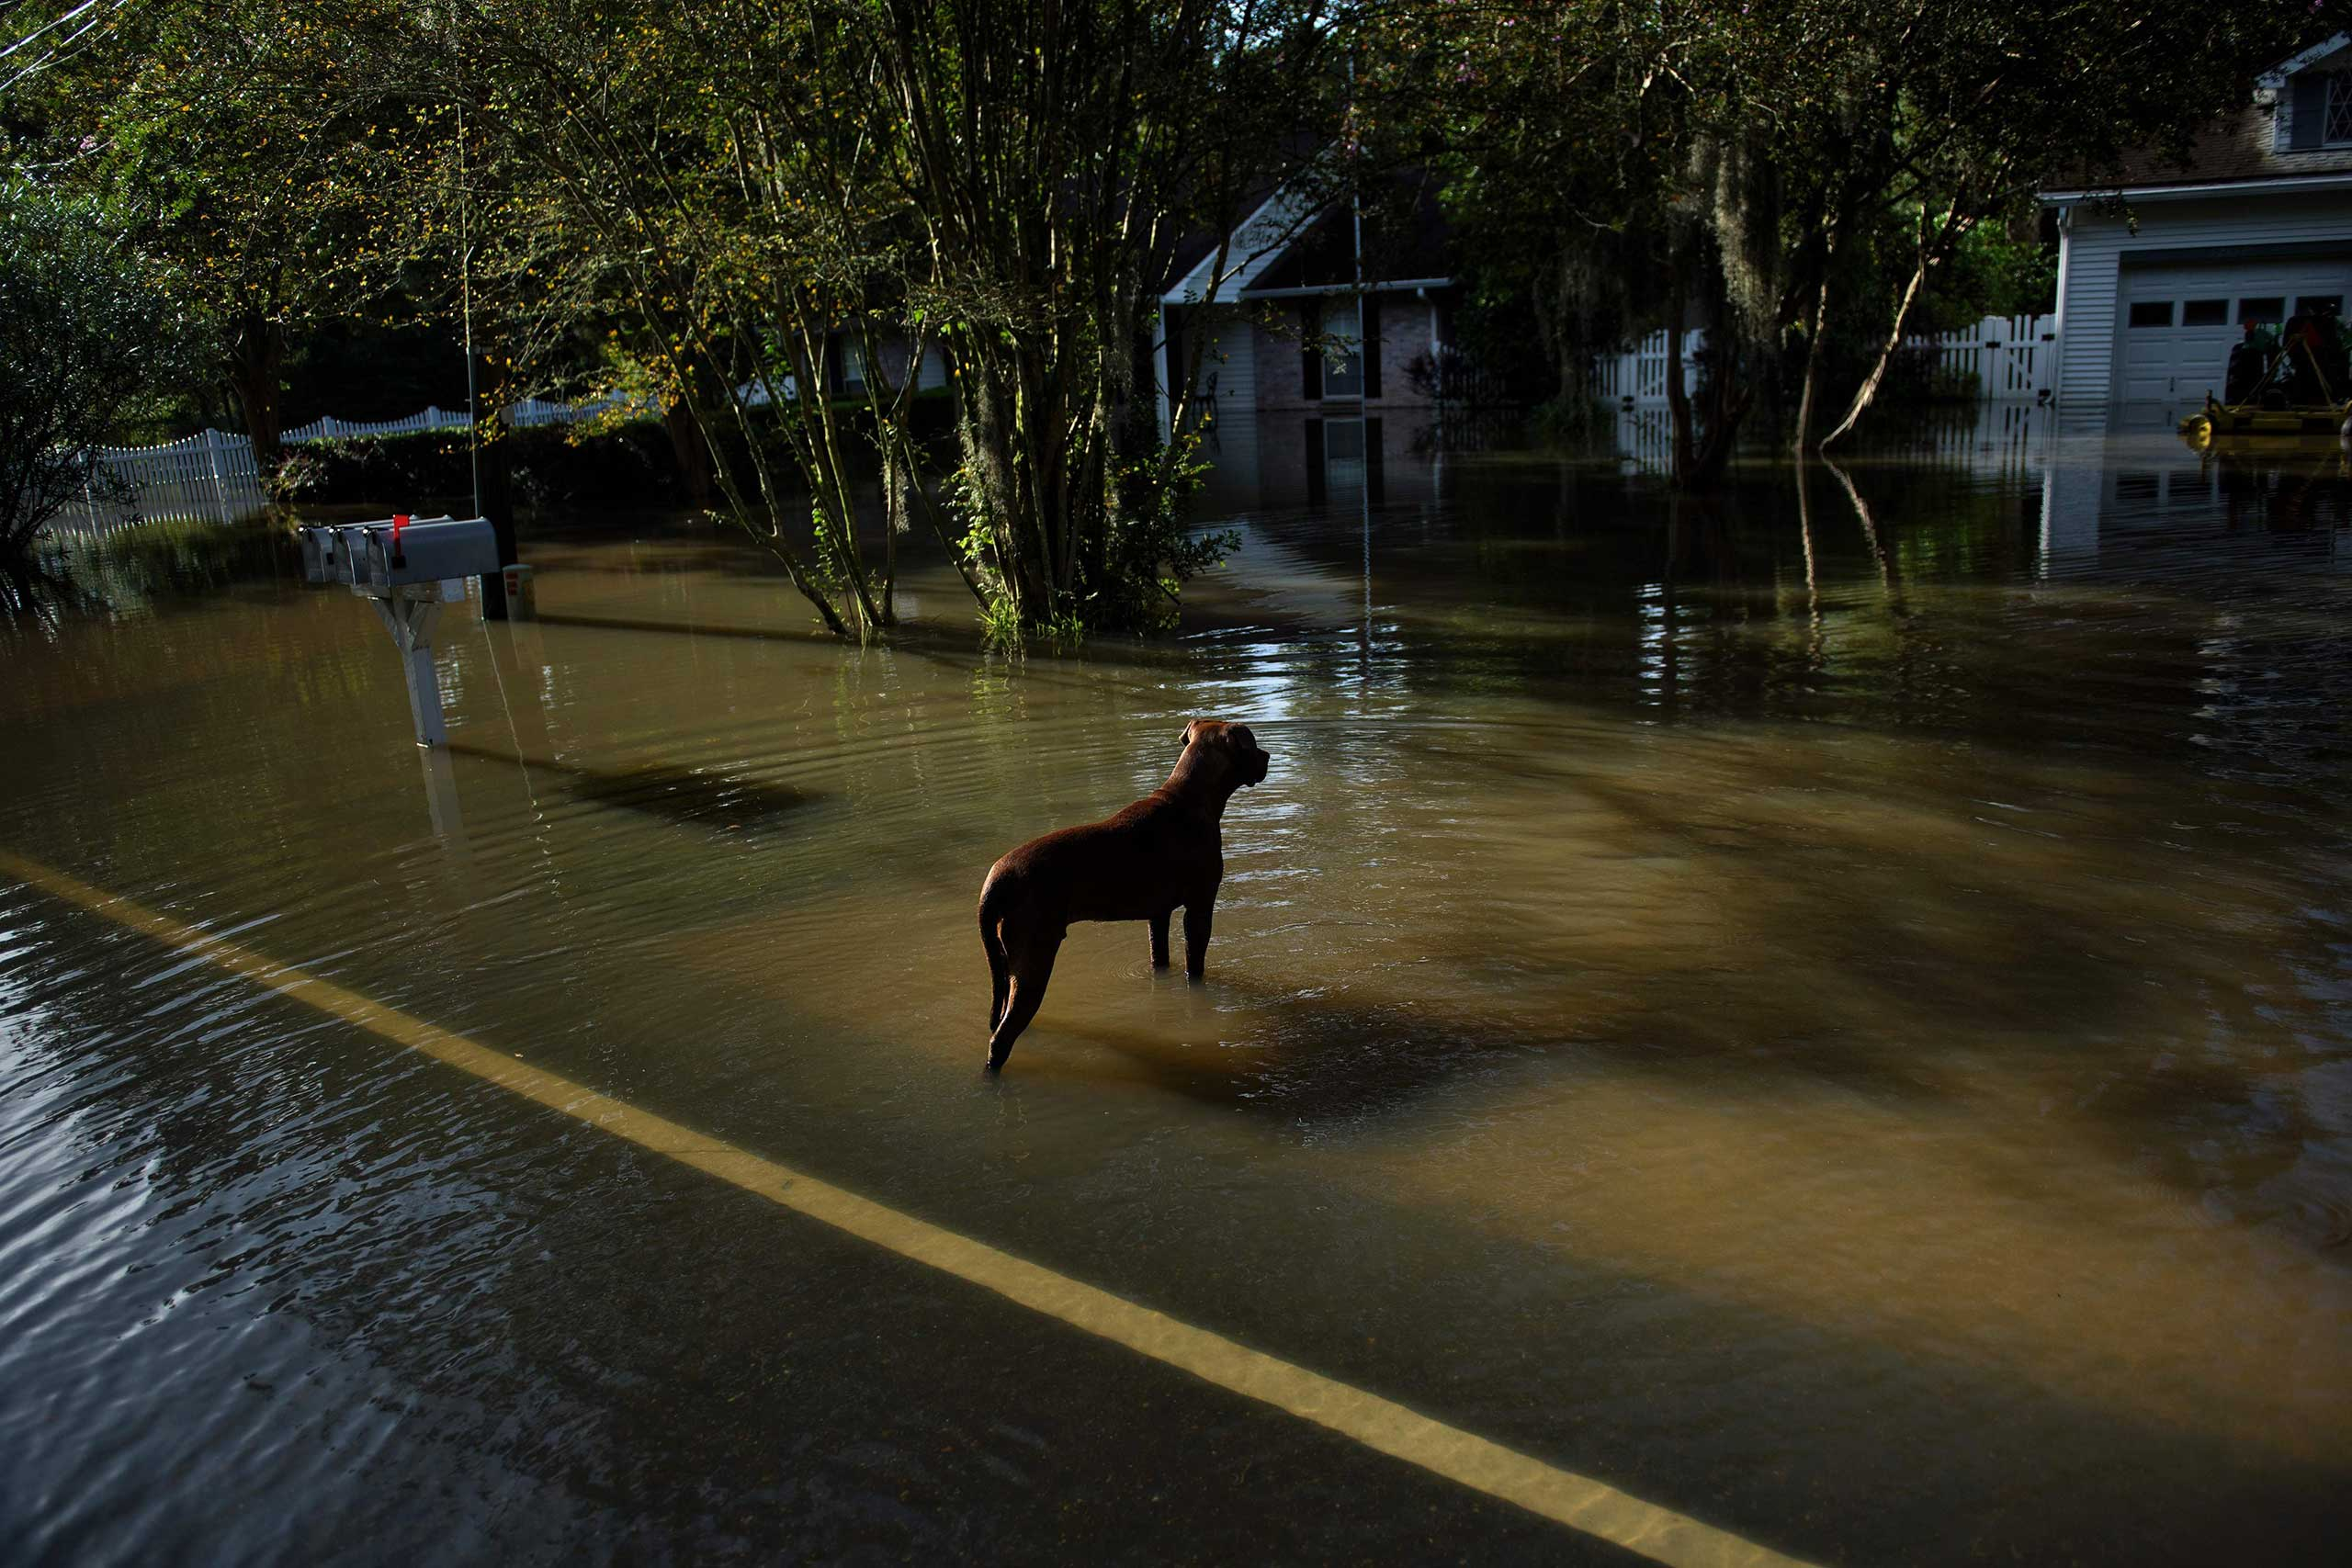 A dog wanders through a flooded neighborhood in Gonzales, La., on Aug. 16, 2016.